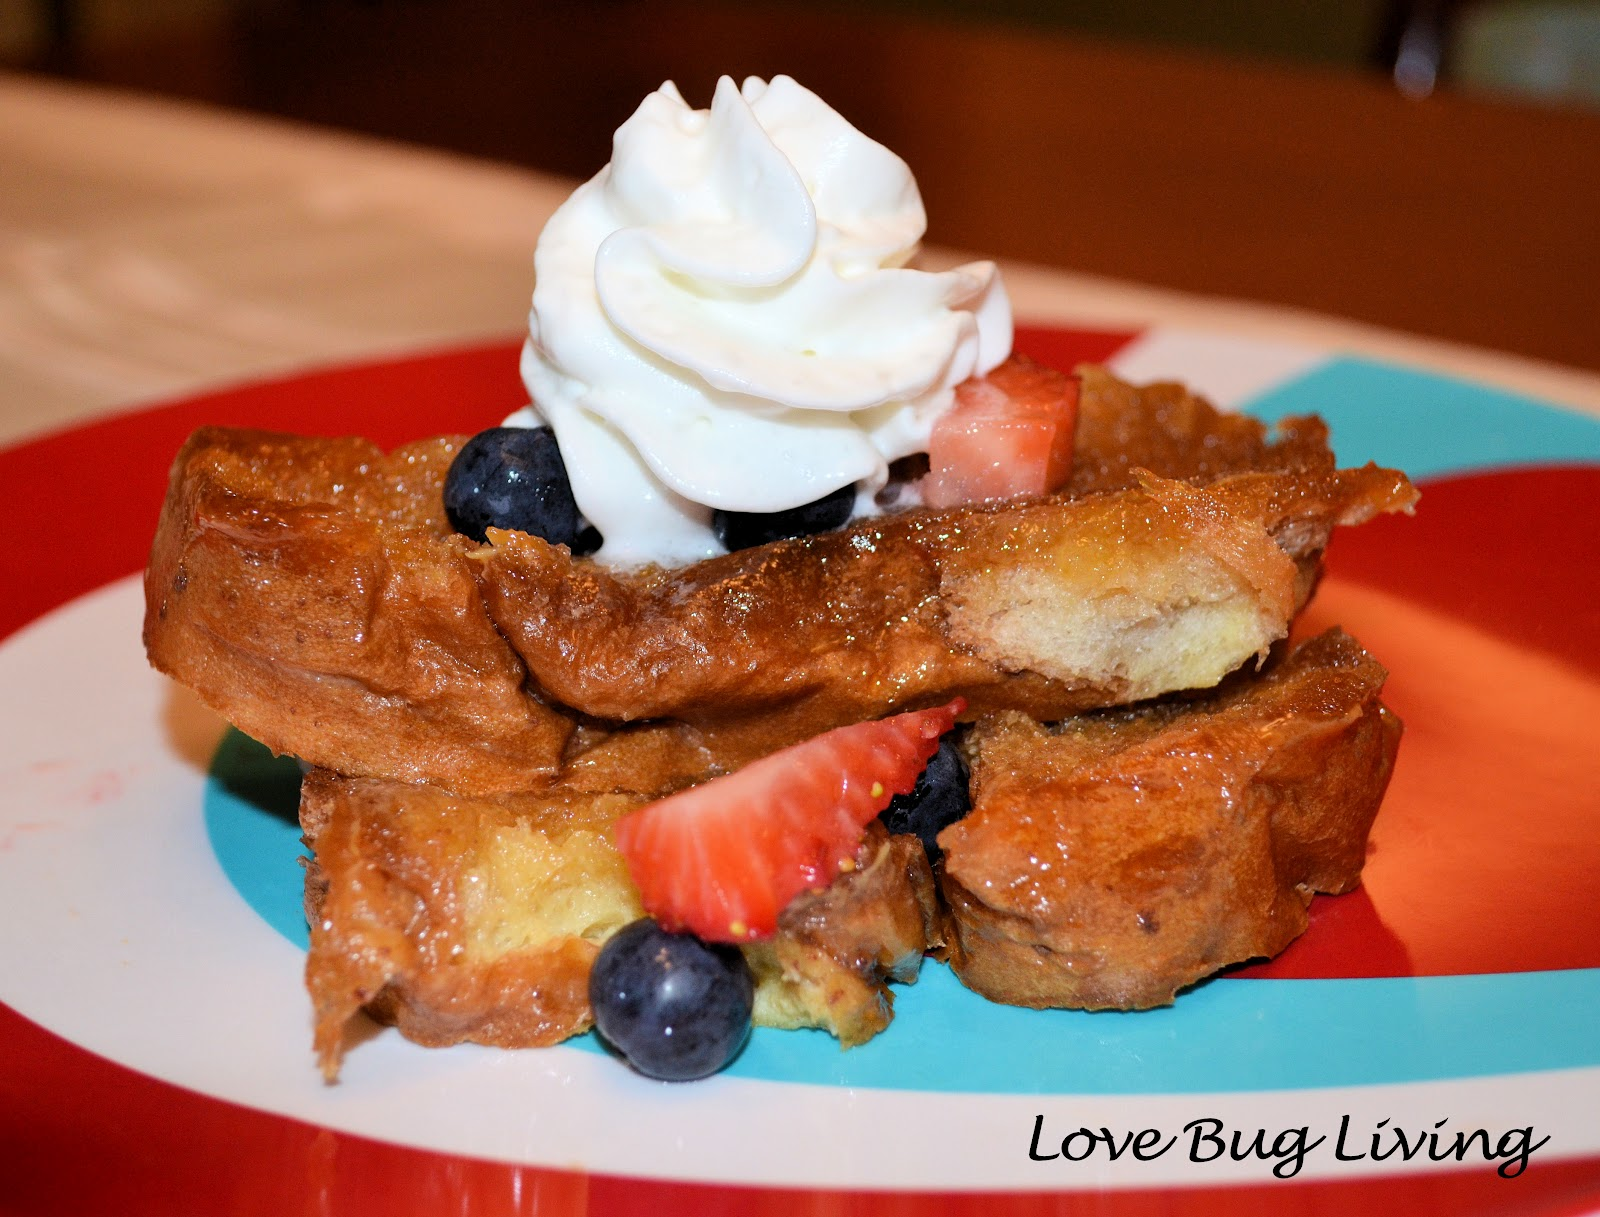 ... whipped cream for fun. This is the perfect special occasion breakfast